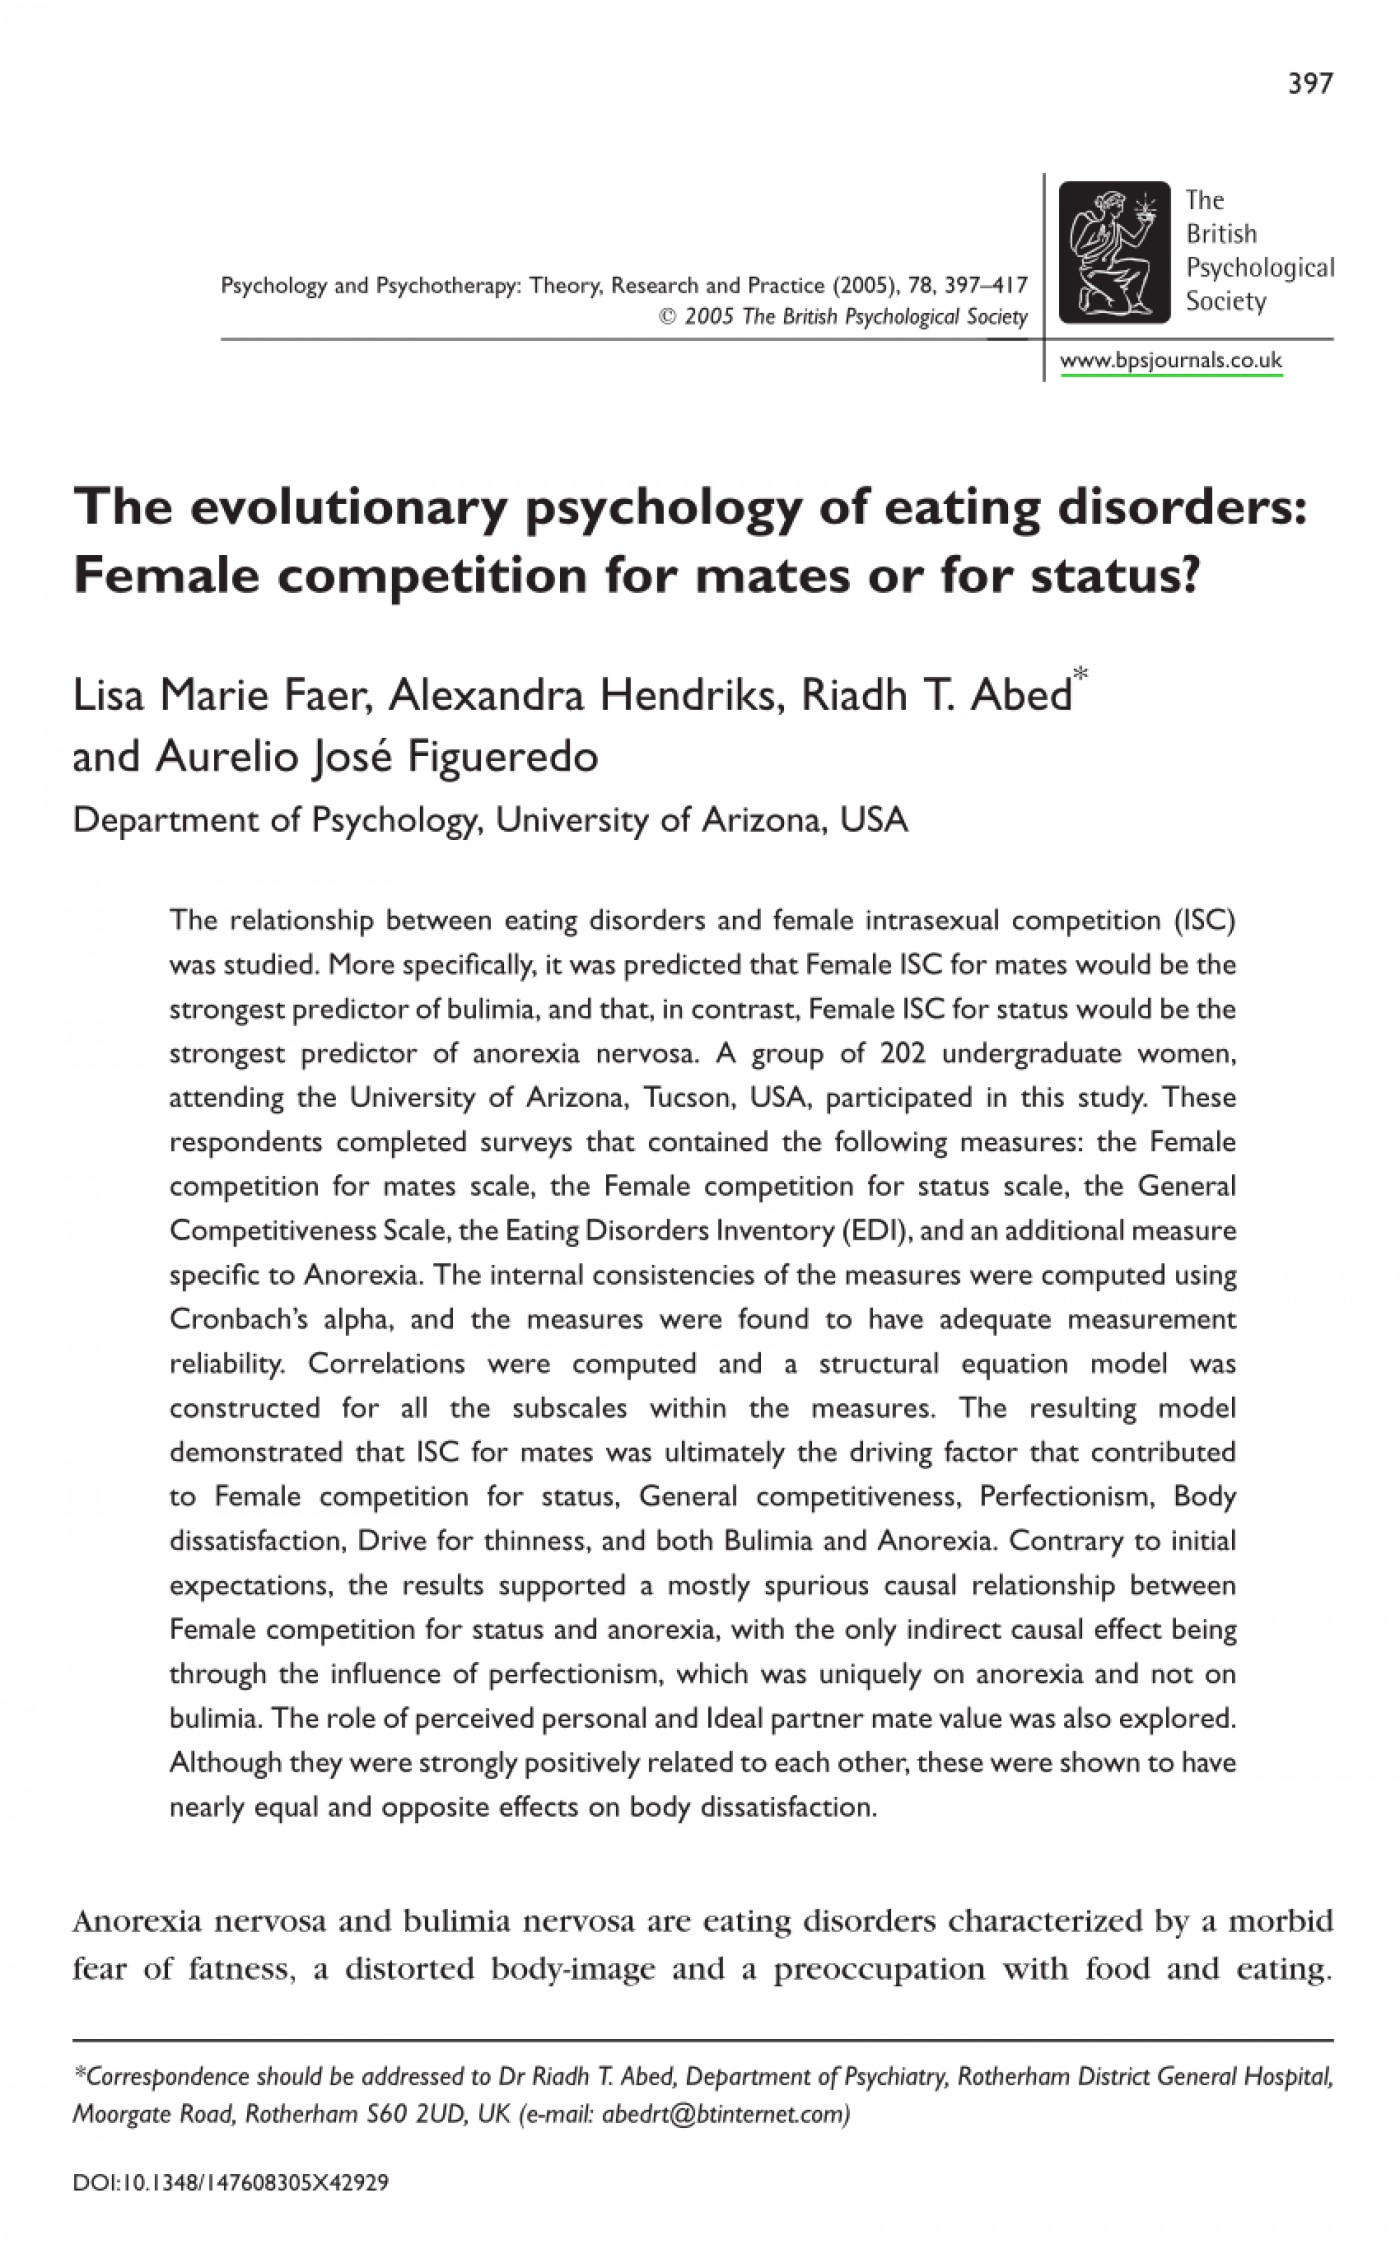 006 Psychology Research Paper On Eating Disorders Top Study Topics Essay 1400